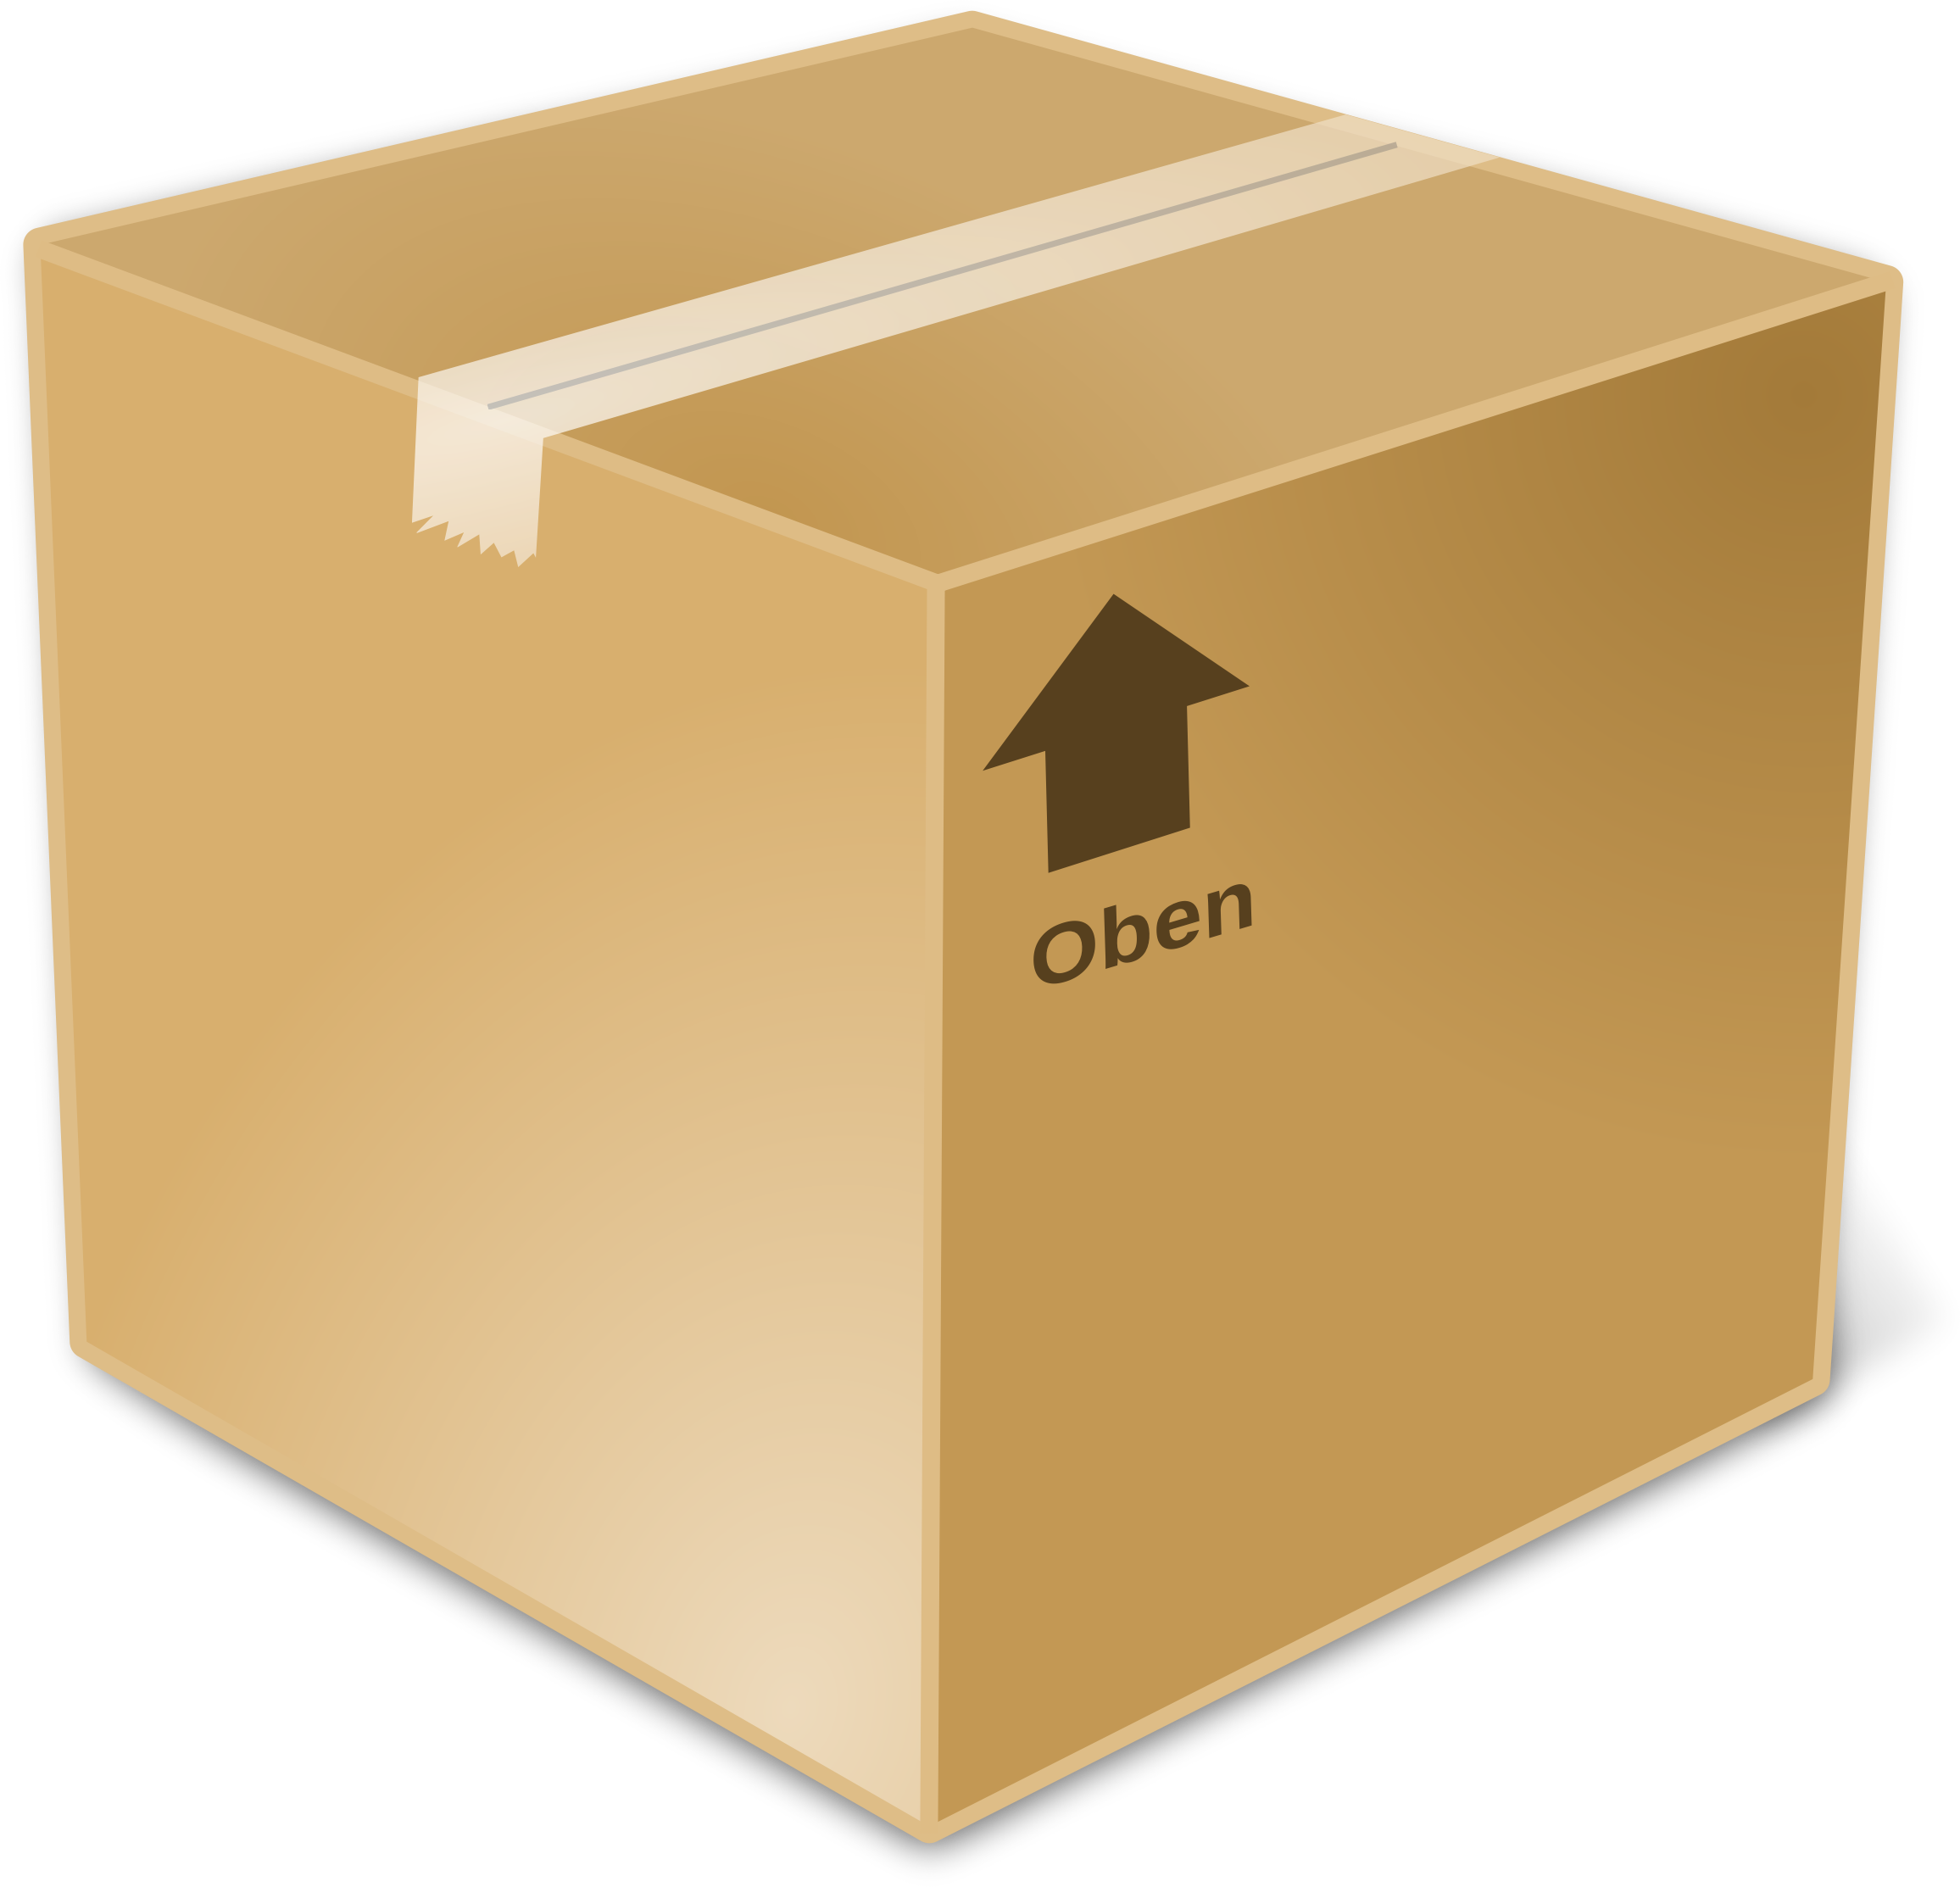 Parcel clipart closed box Clip Free Panda Clipart Package